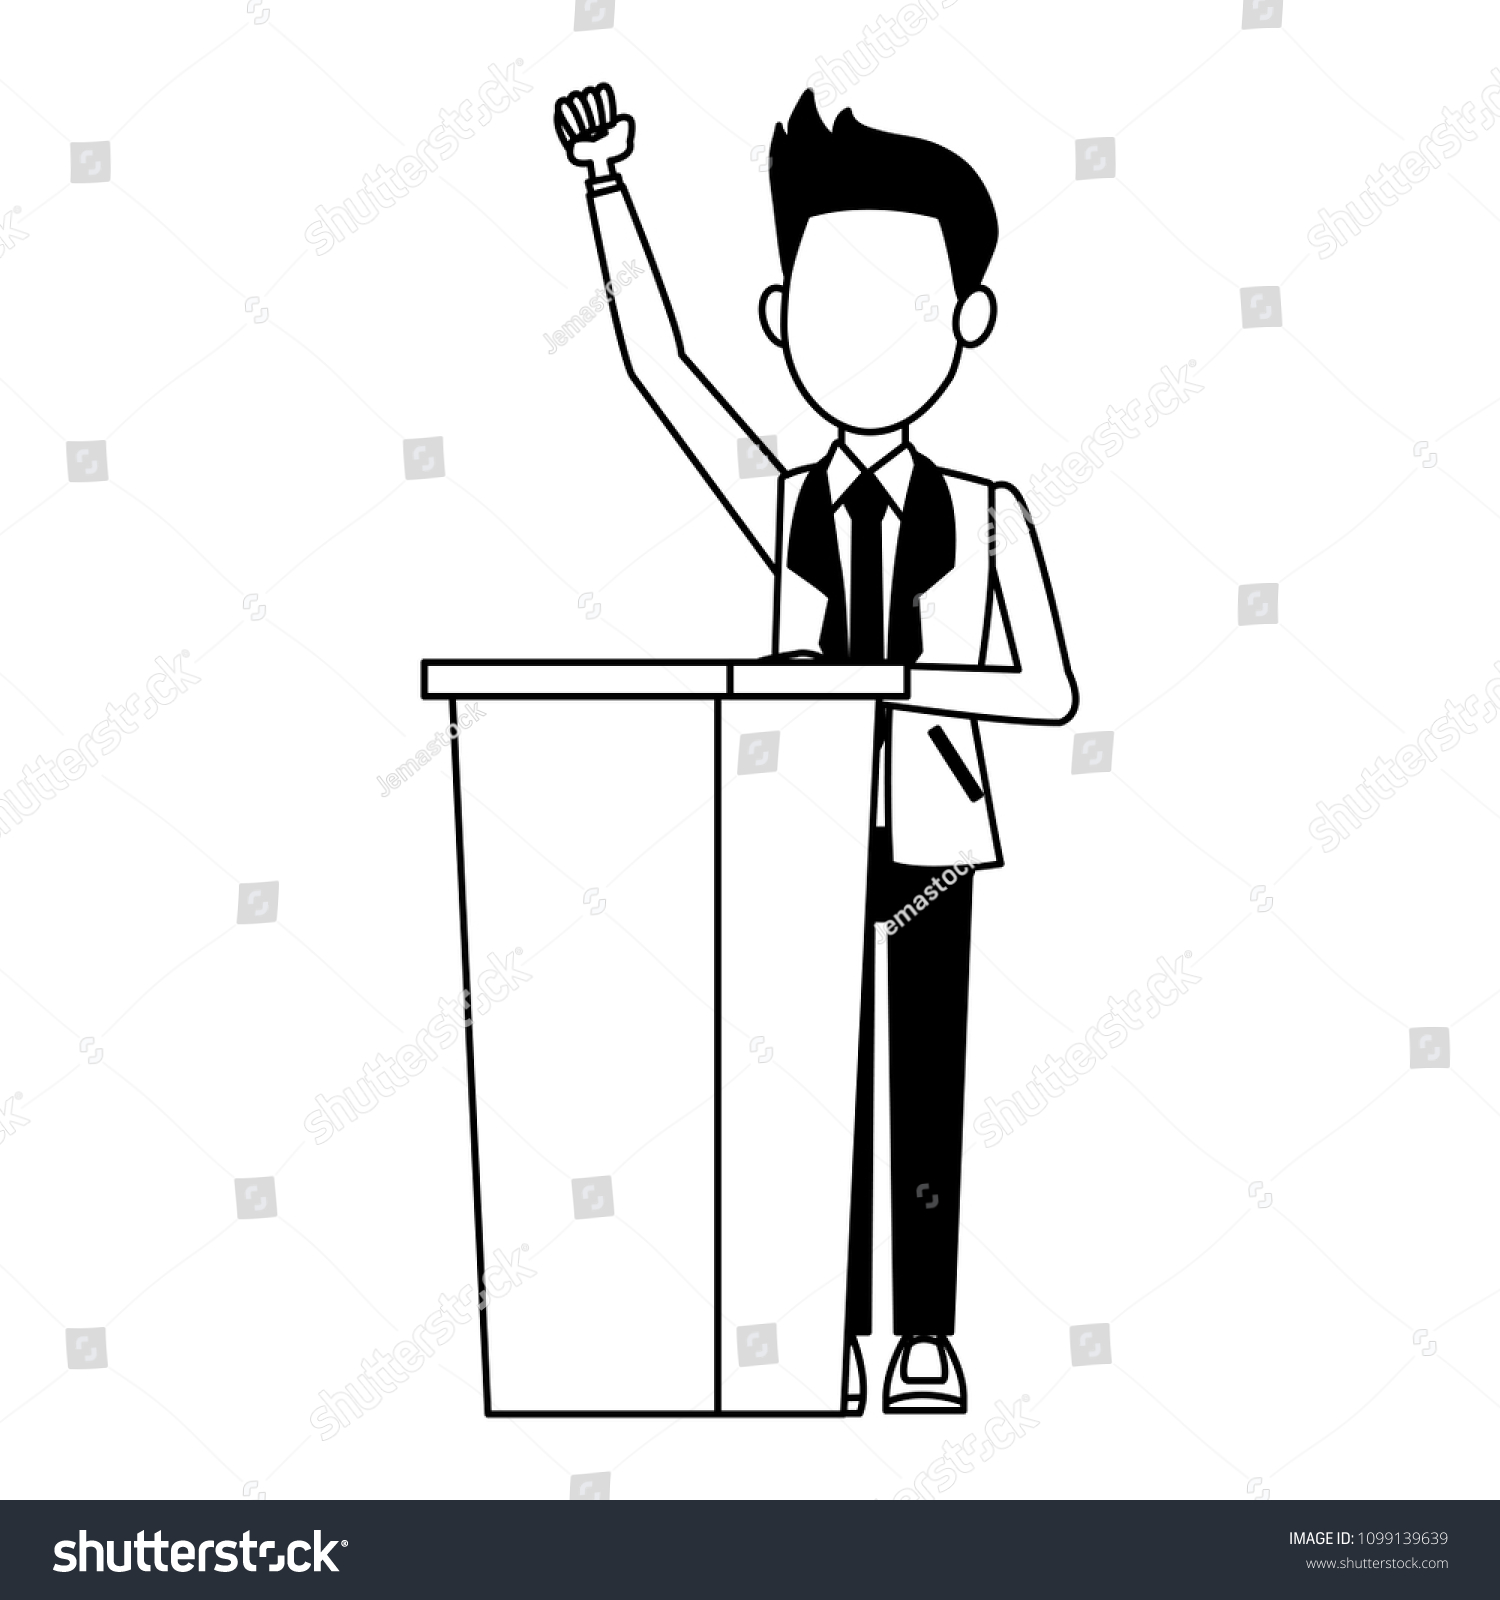 Politician Speaking Cartoon Black White Stock Vector Royalty Free 1099139639